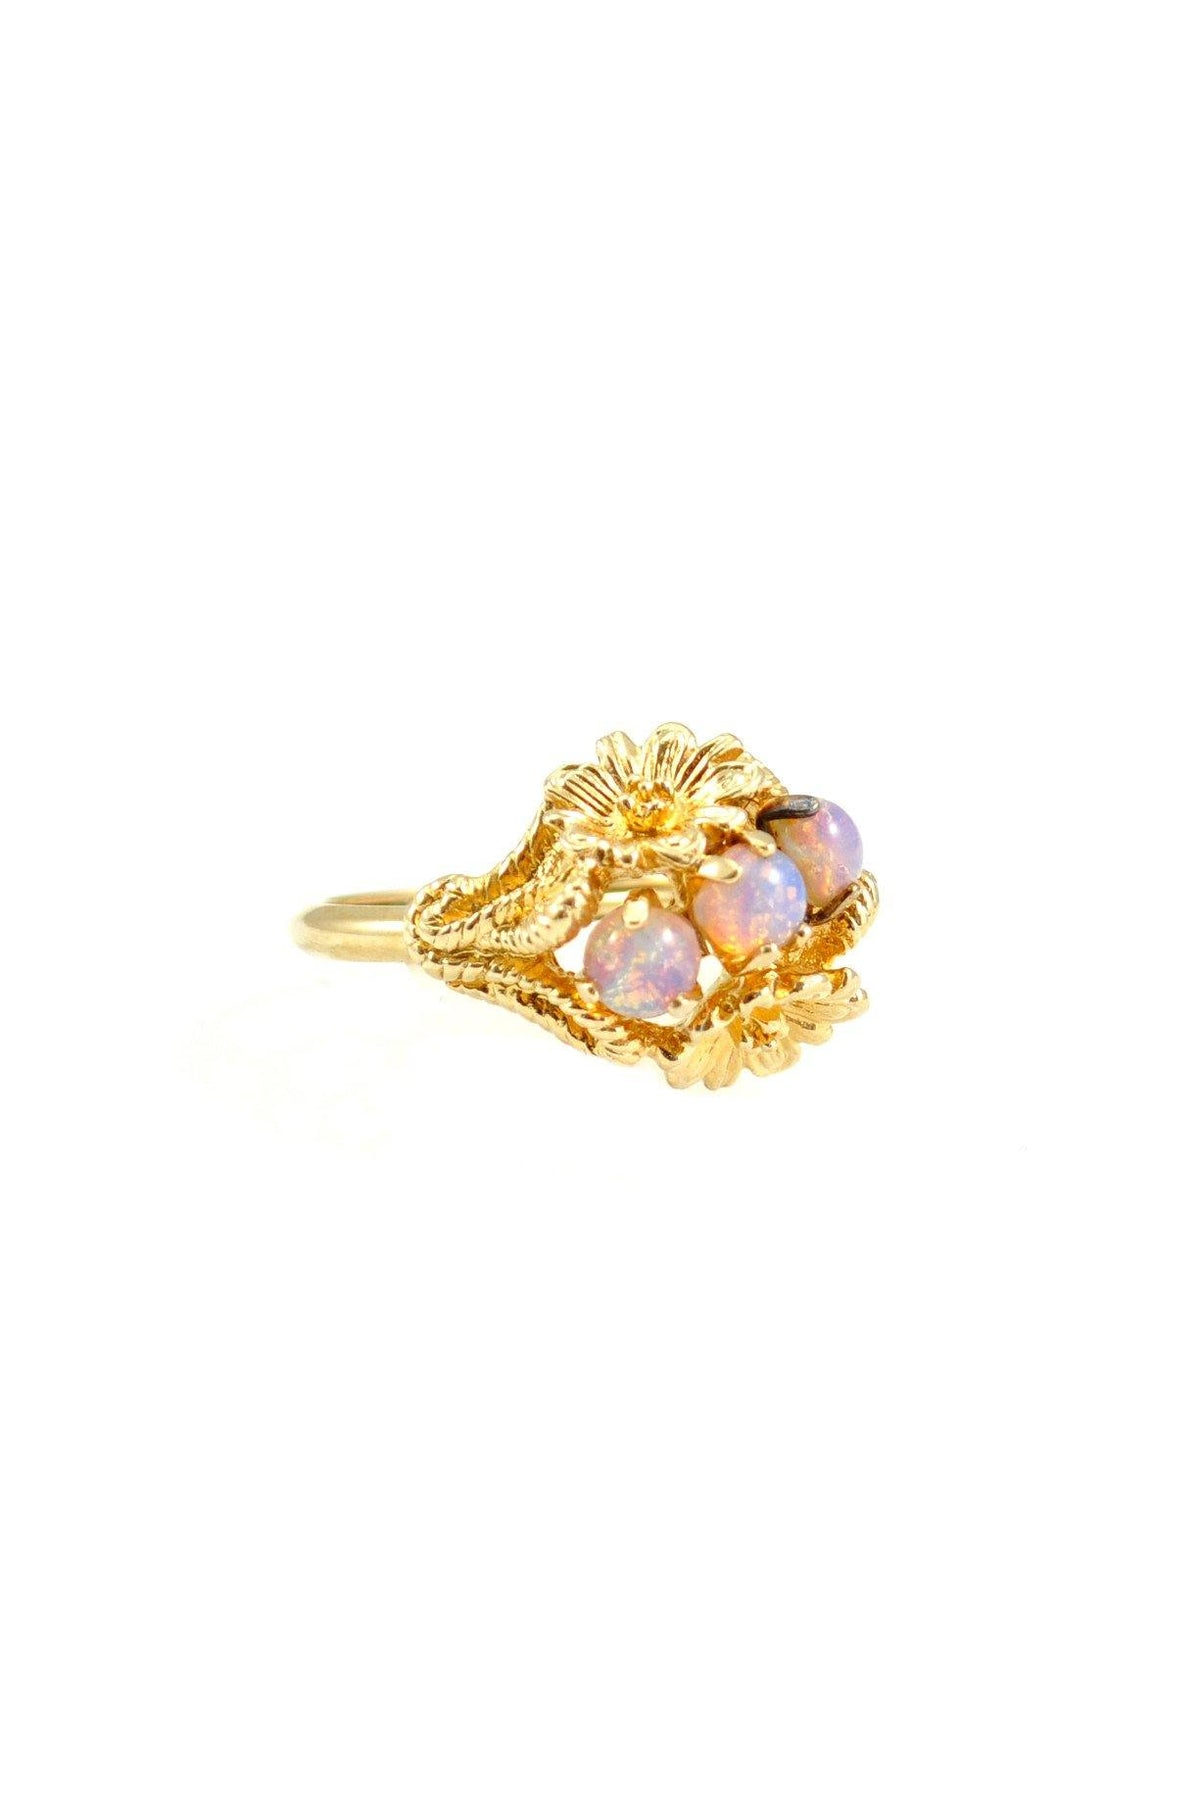 70s__Vintage_Opal Feather Ring